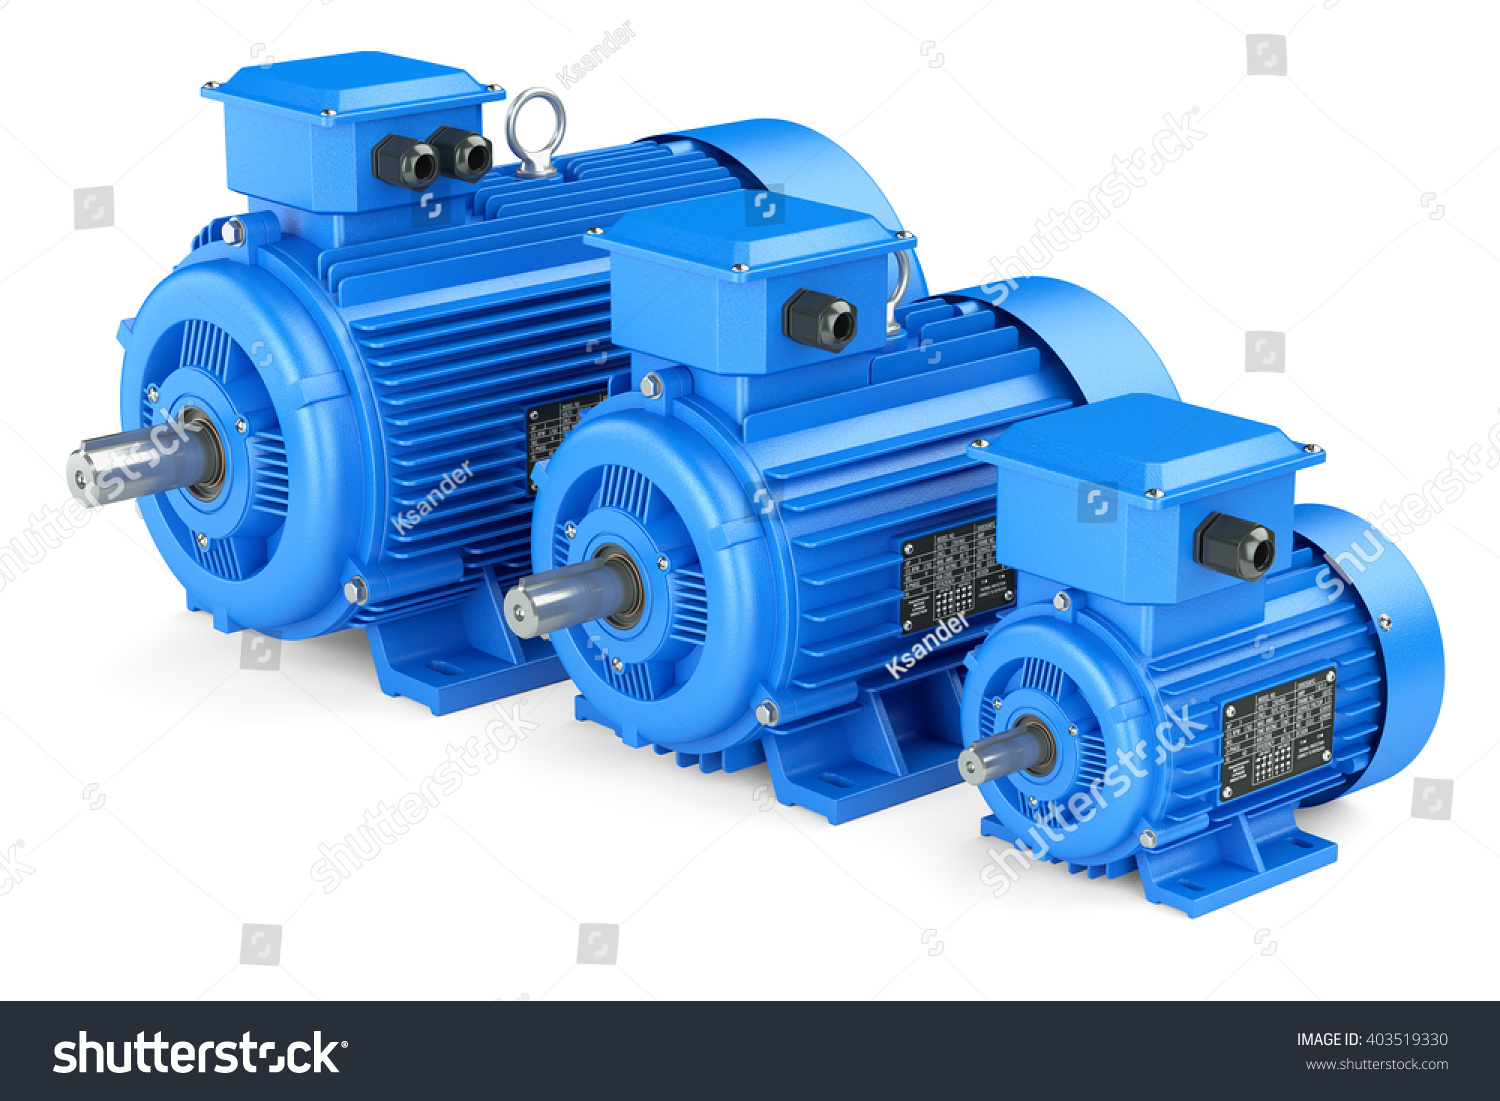 Group blue electric industrial motors isolated stock for Used industrial electric motors